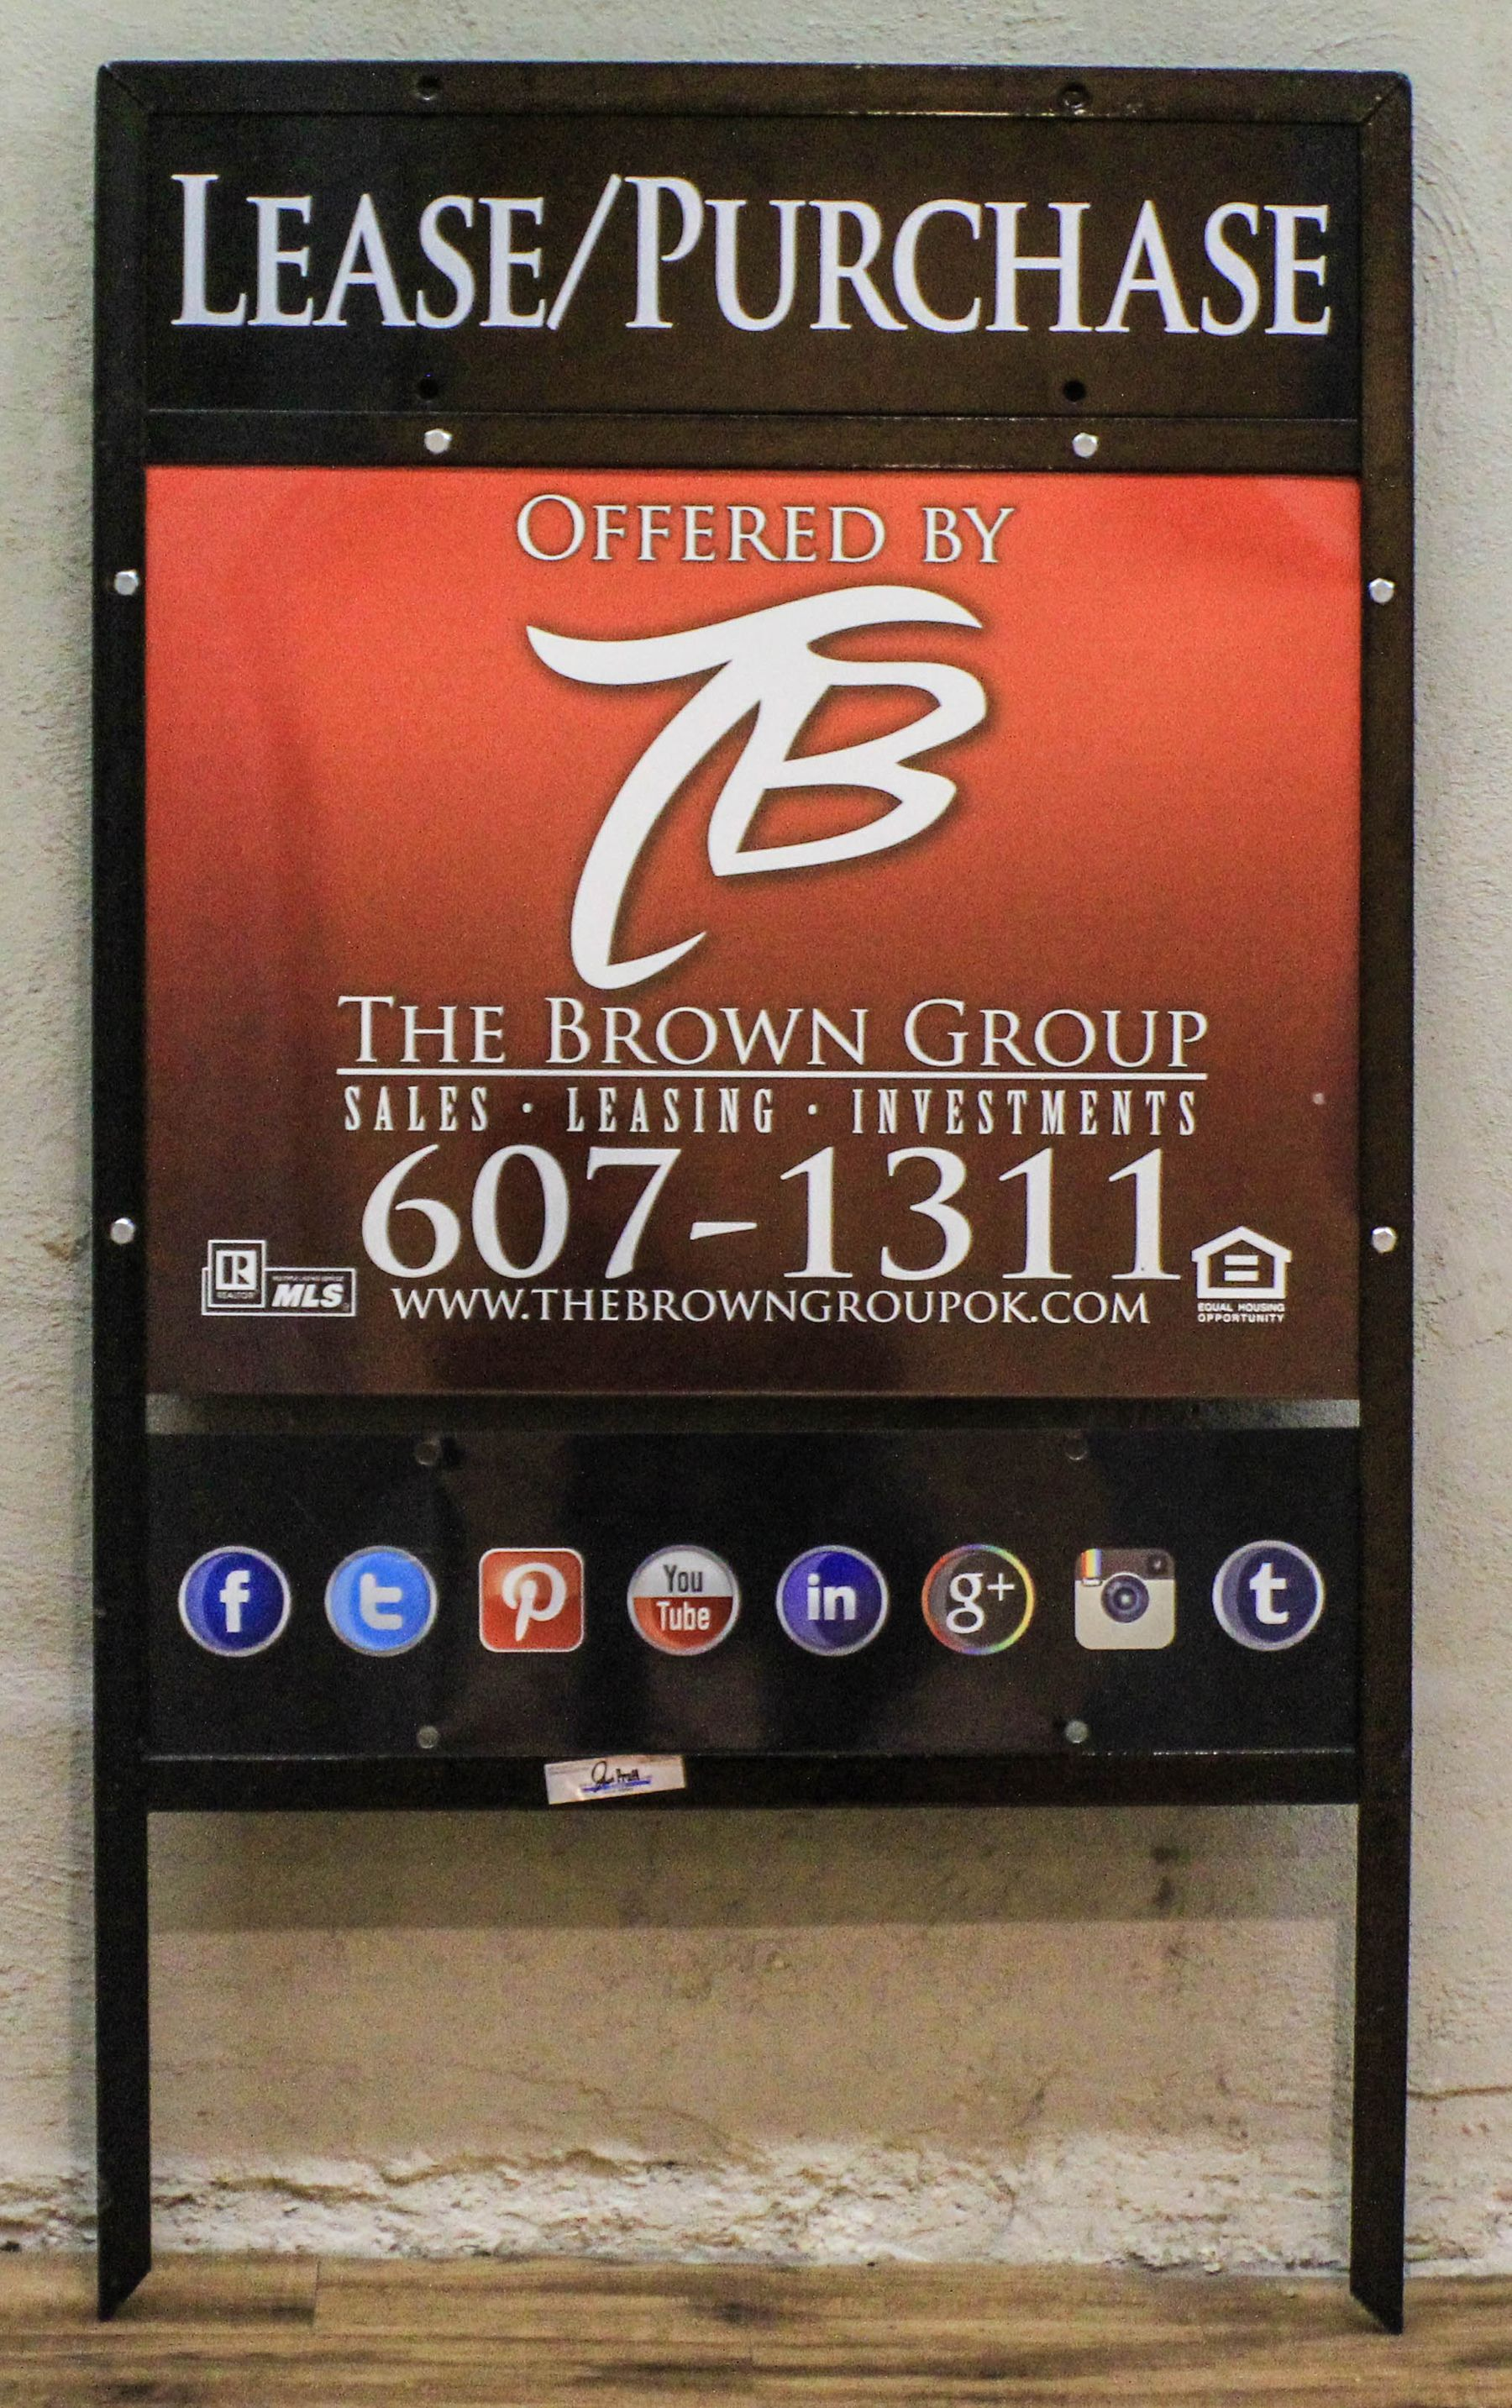 Check out the new signs for our homes okc is about to see